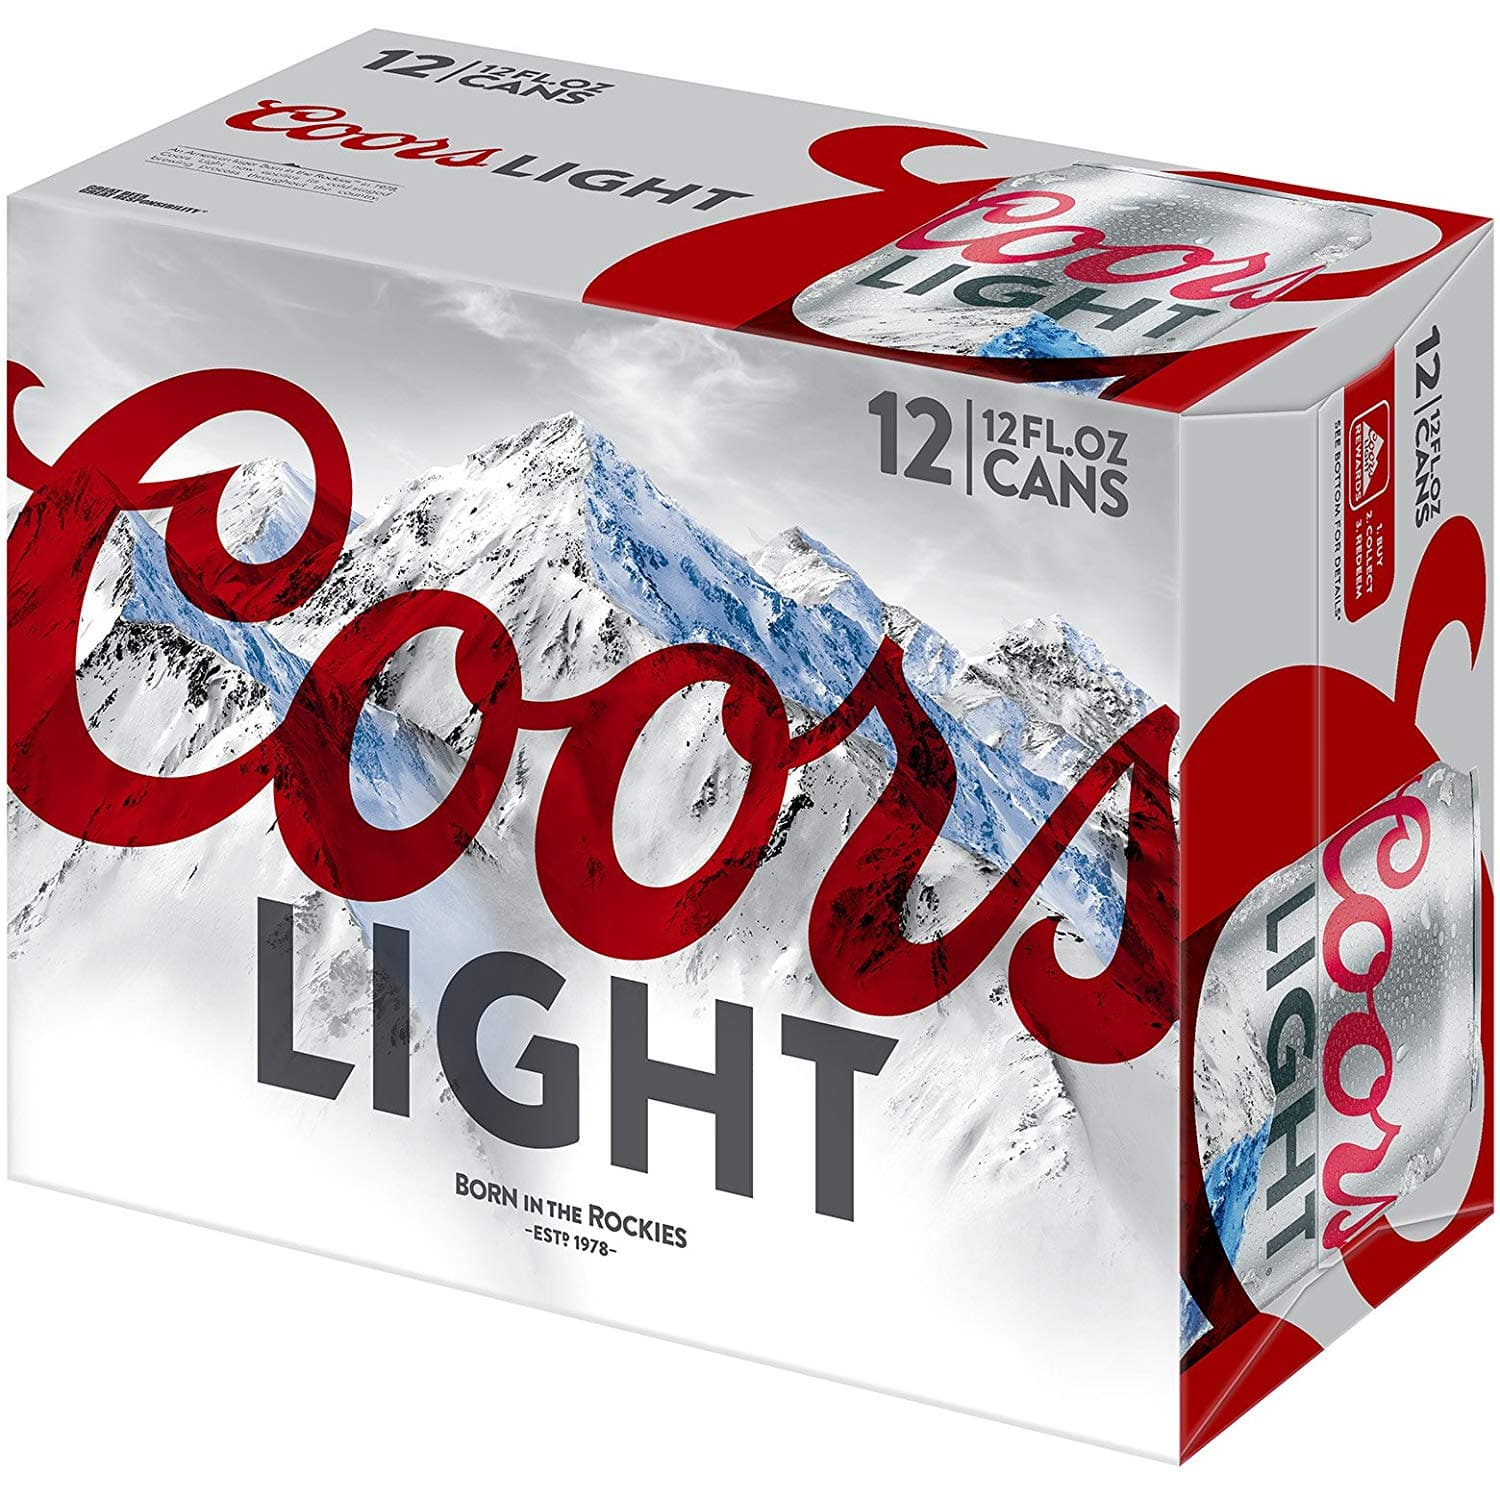 Coors Light, 12 pk, 12 oz cans, 4 2% ABV $2 4 - Slickdeals net